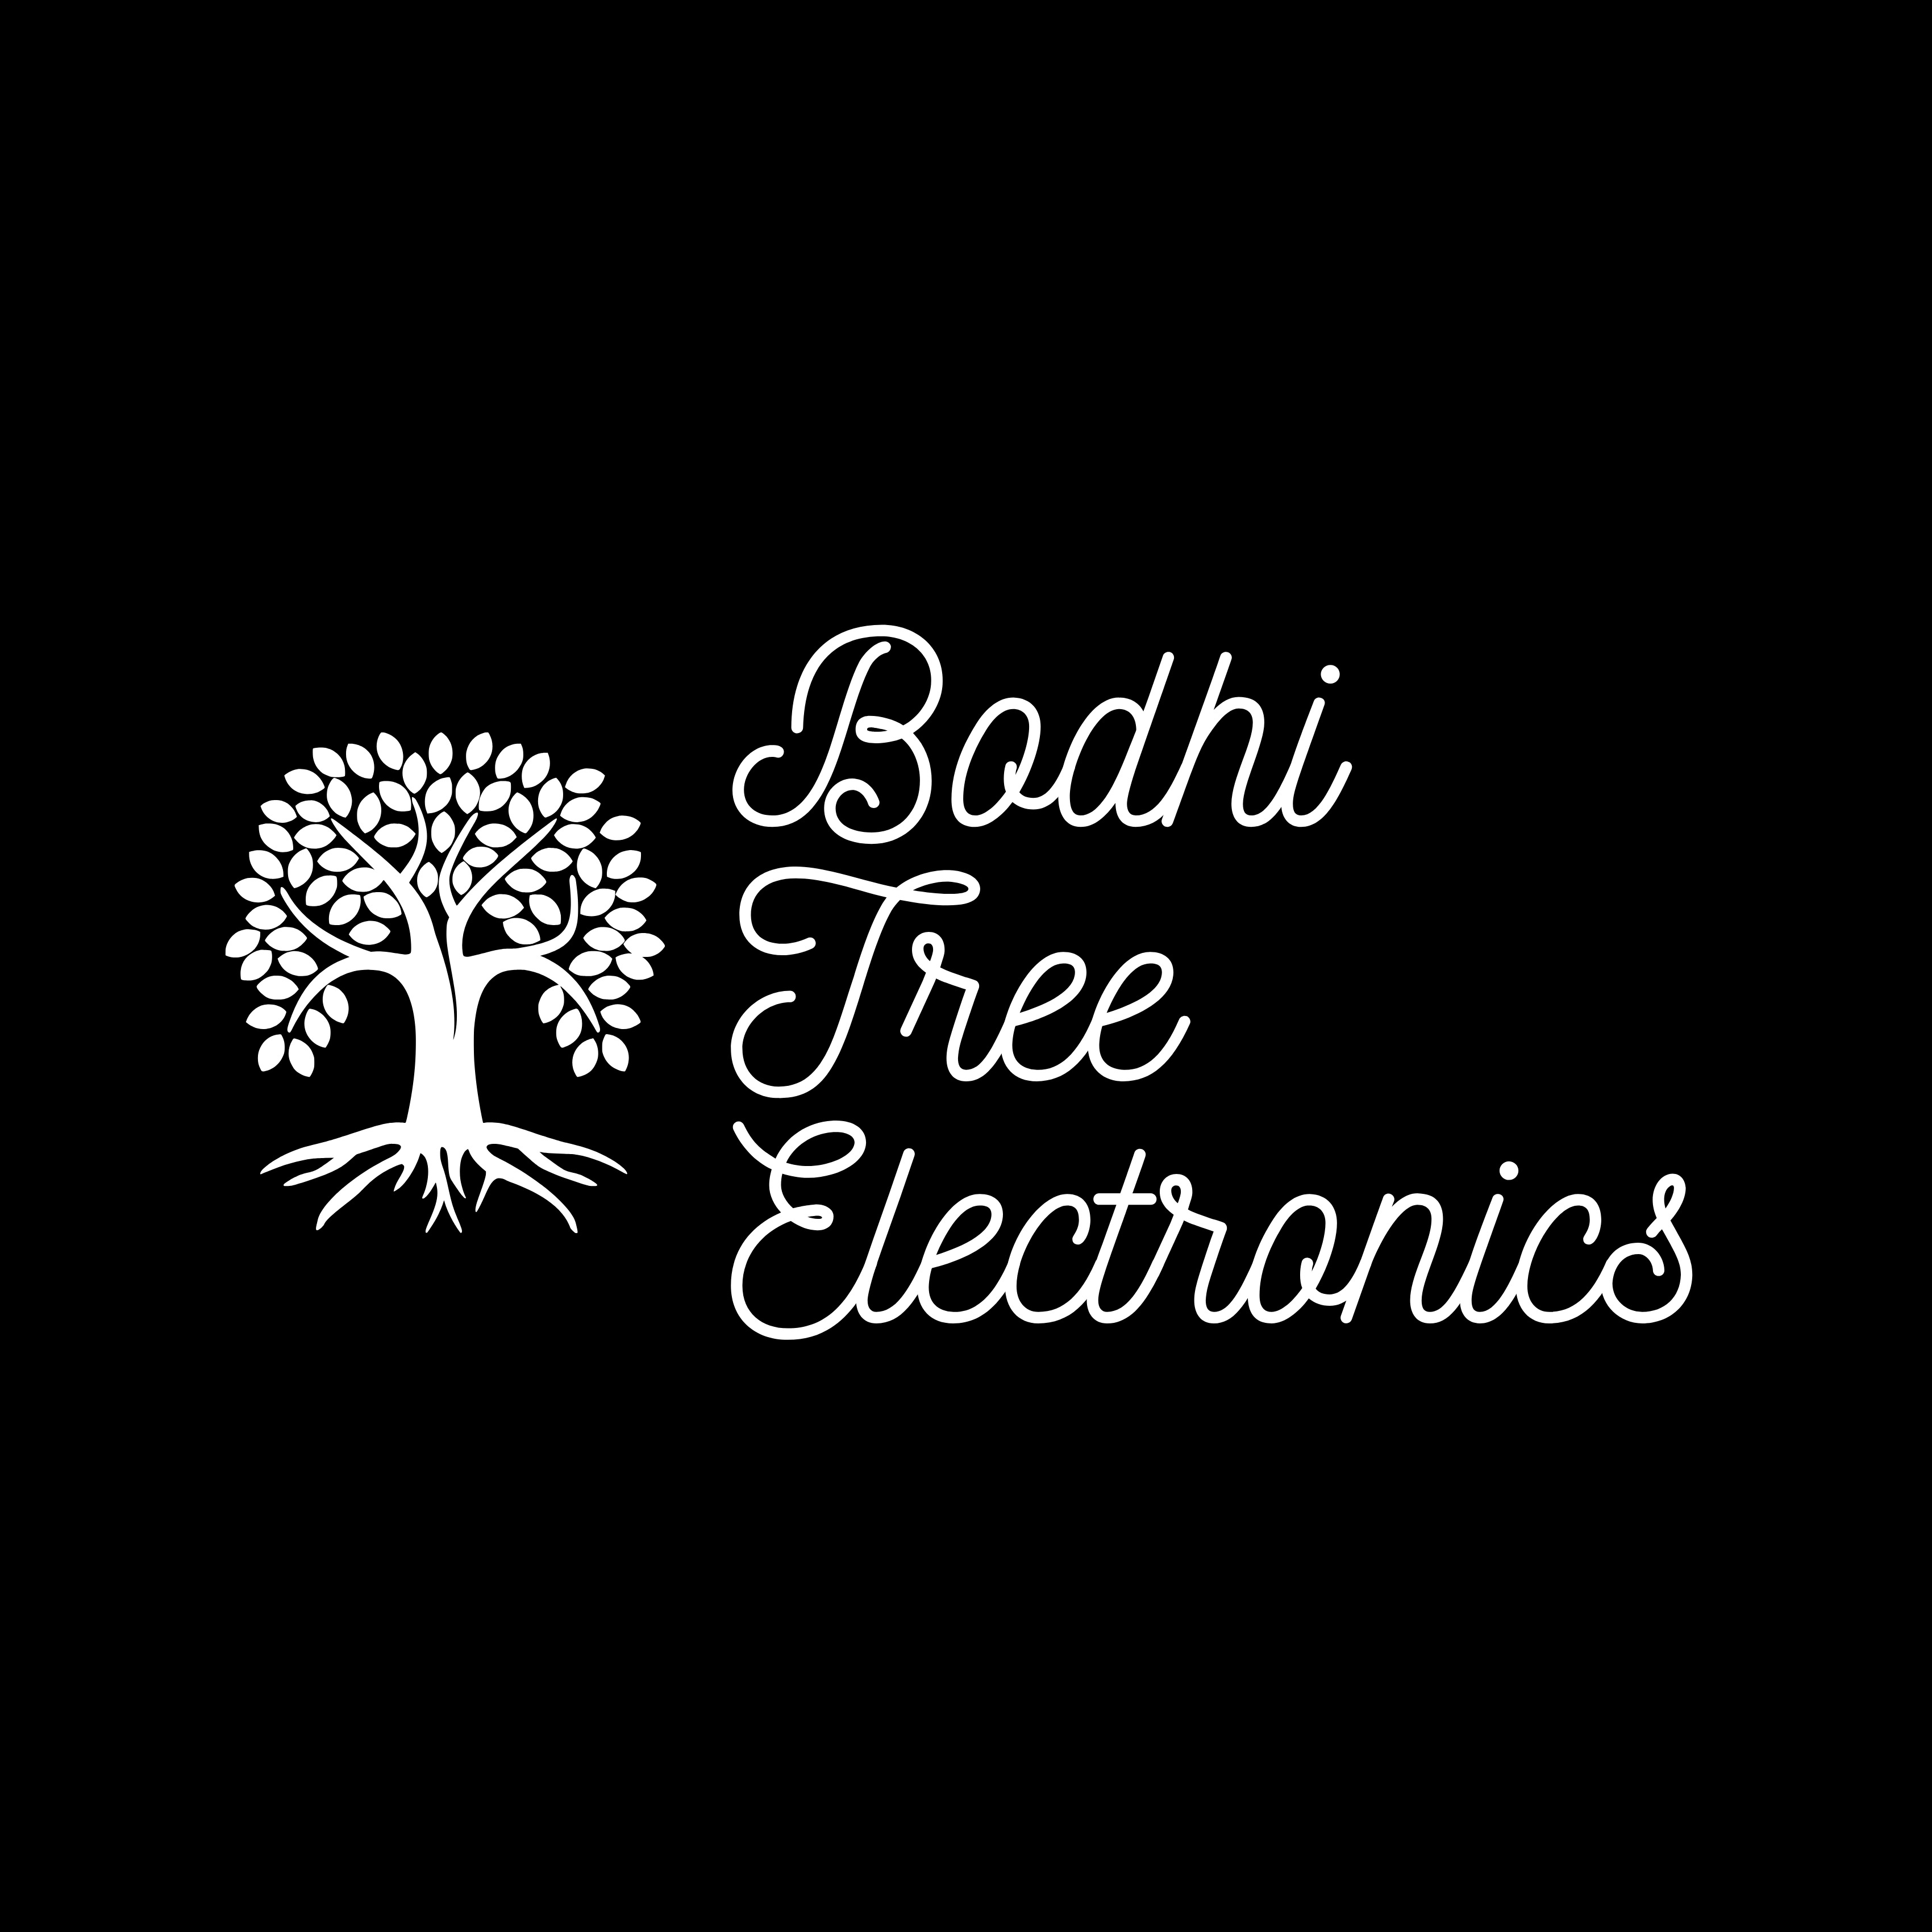 Bodhi Tree Electronics Emerges as Preferred Platform For People Looking To Spot